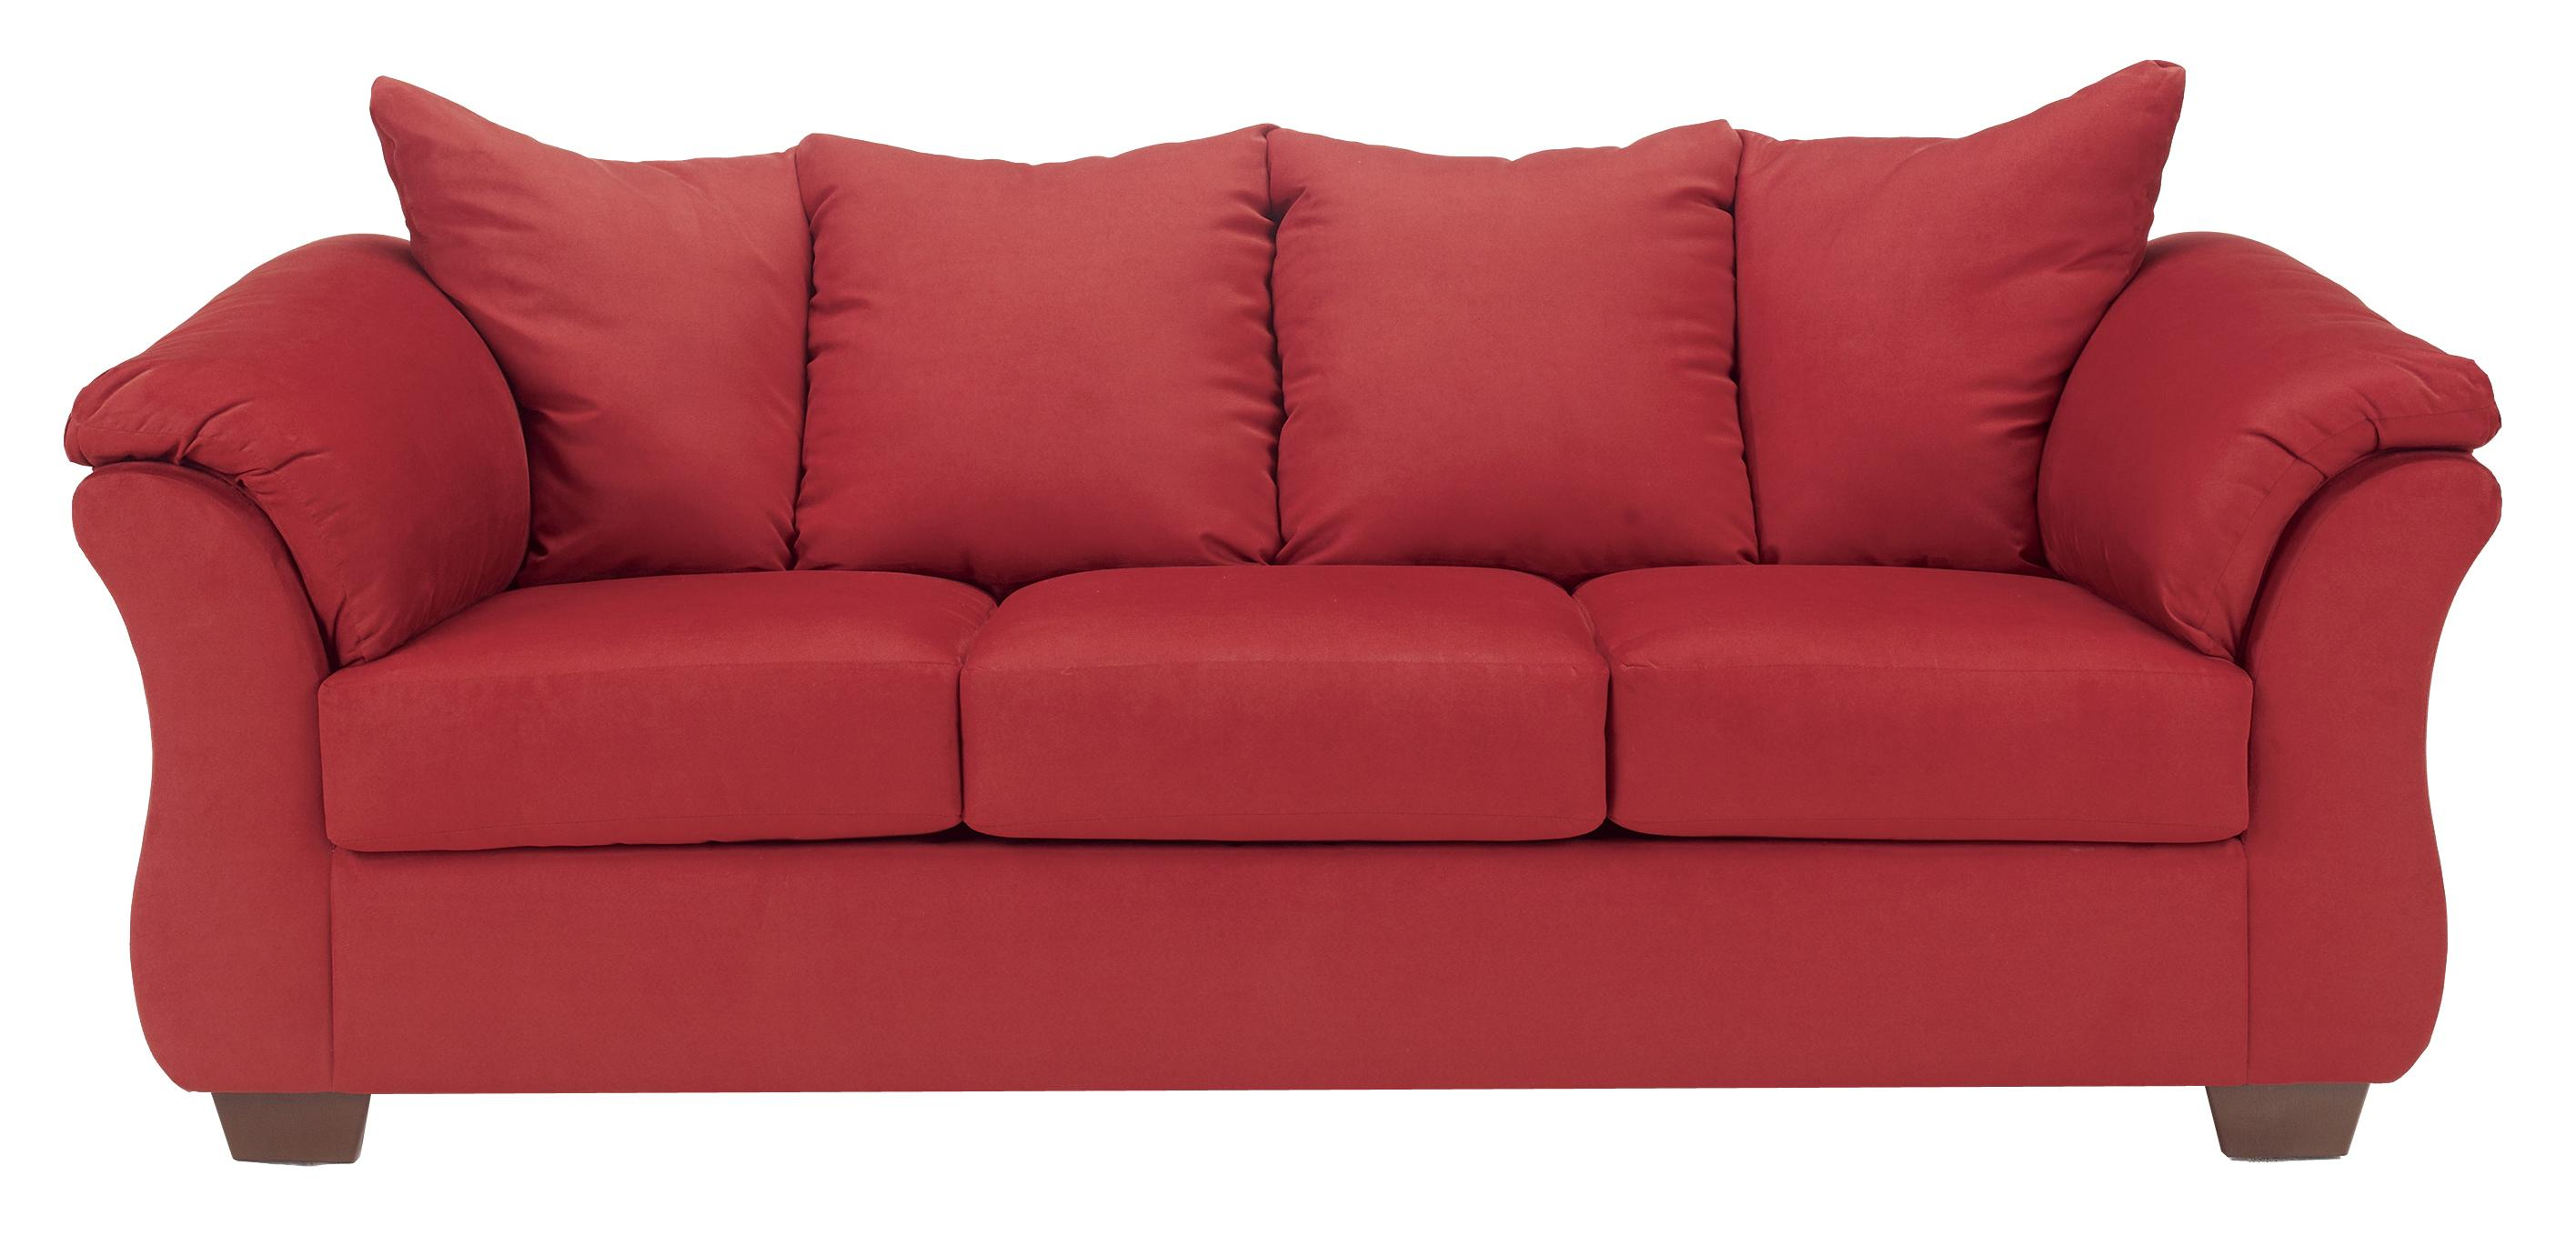 Darcy - Salsa Stationary Sofa by Ashley (Signature Design) at Johnny Janosik